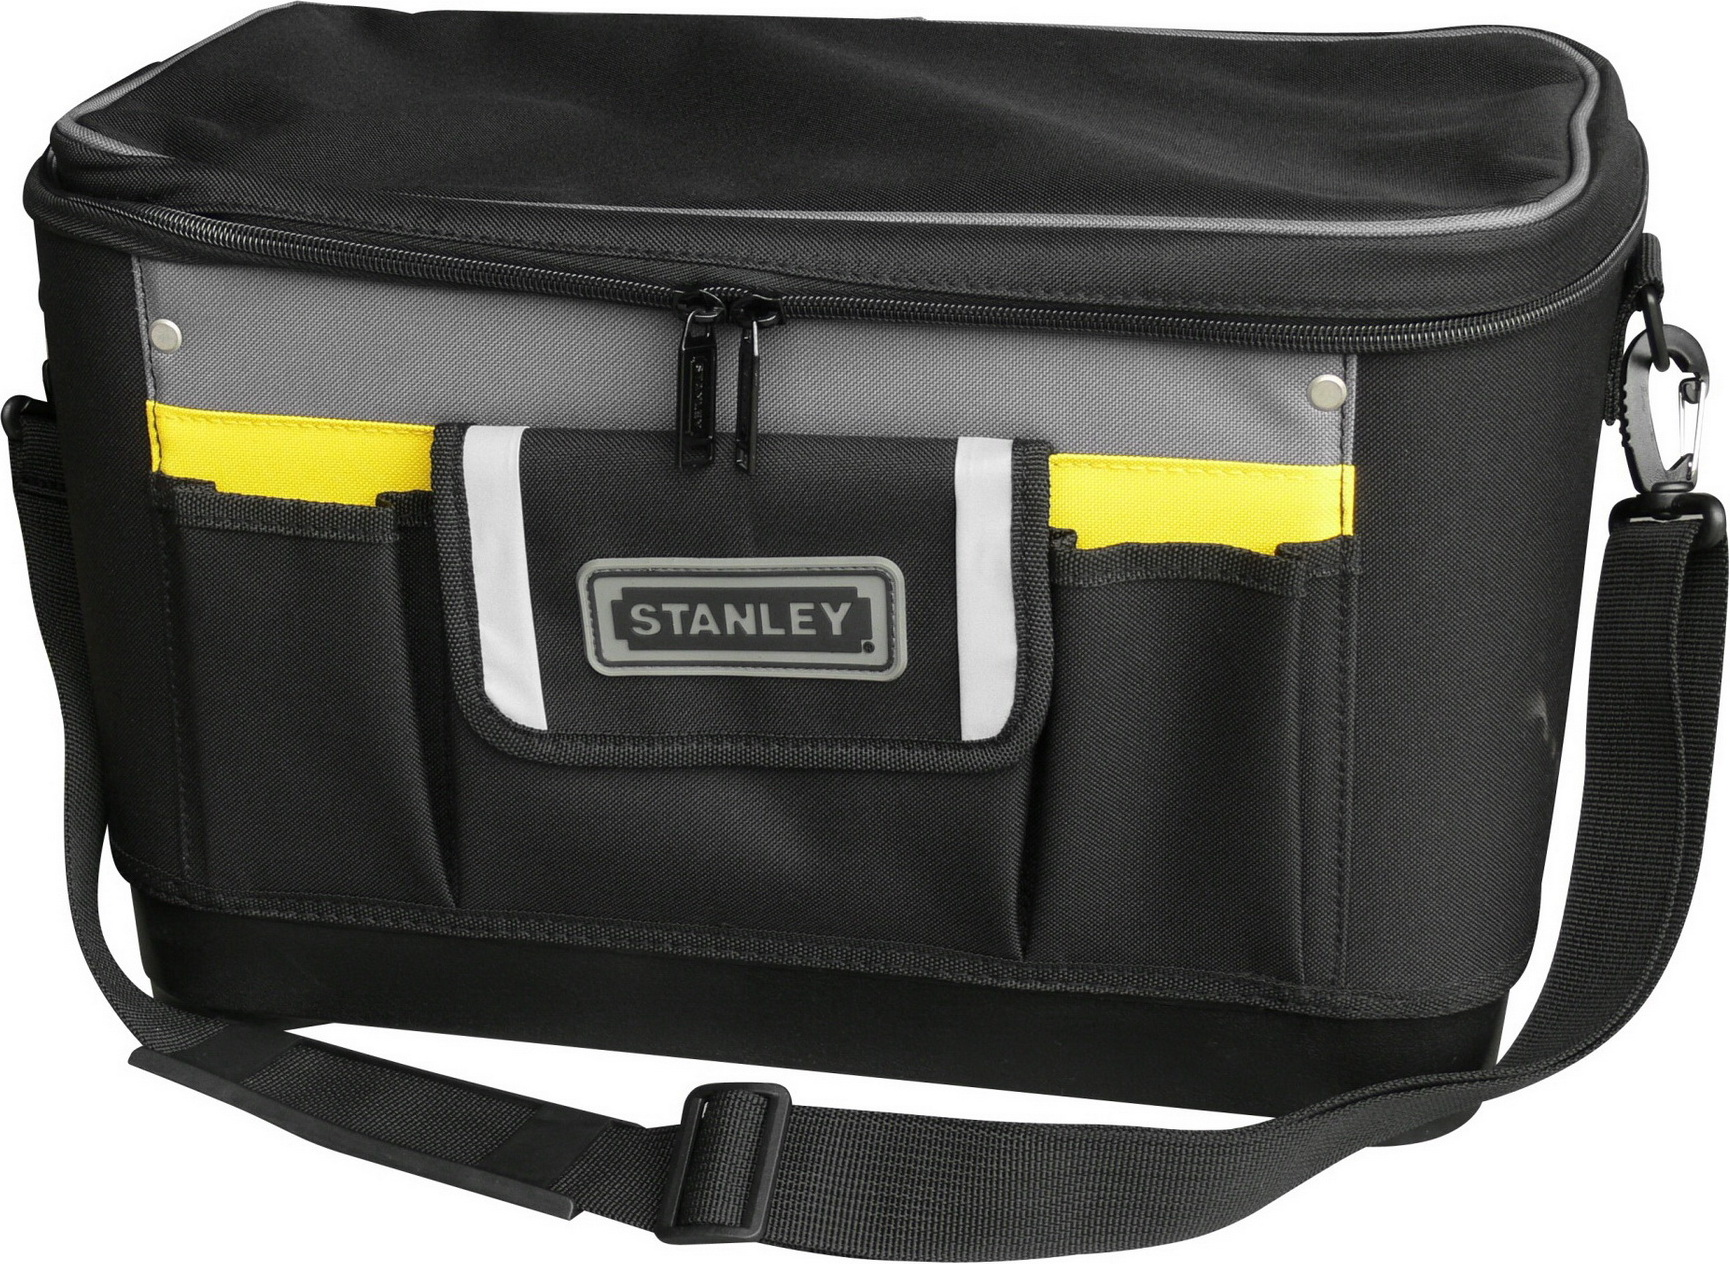 Сумка для инструмента Stanley Rigid multipurpose 1-96-193 stanley 75 предметов 1 87 193